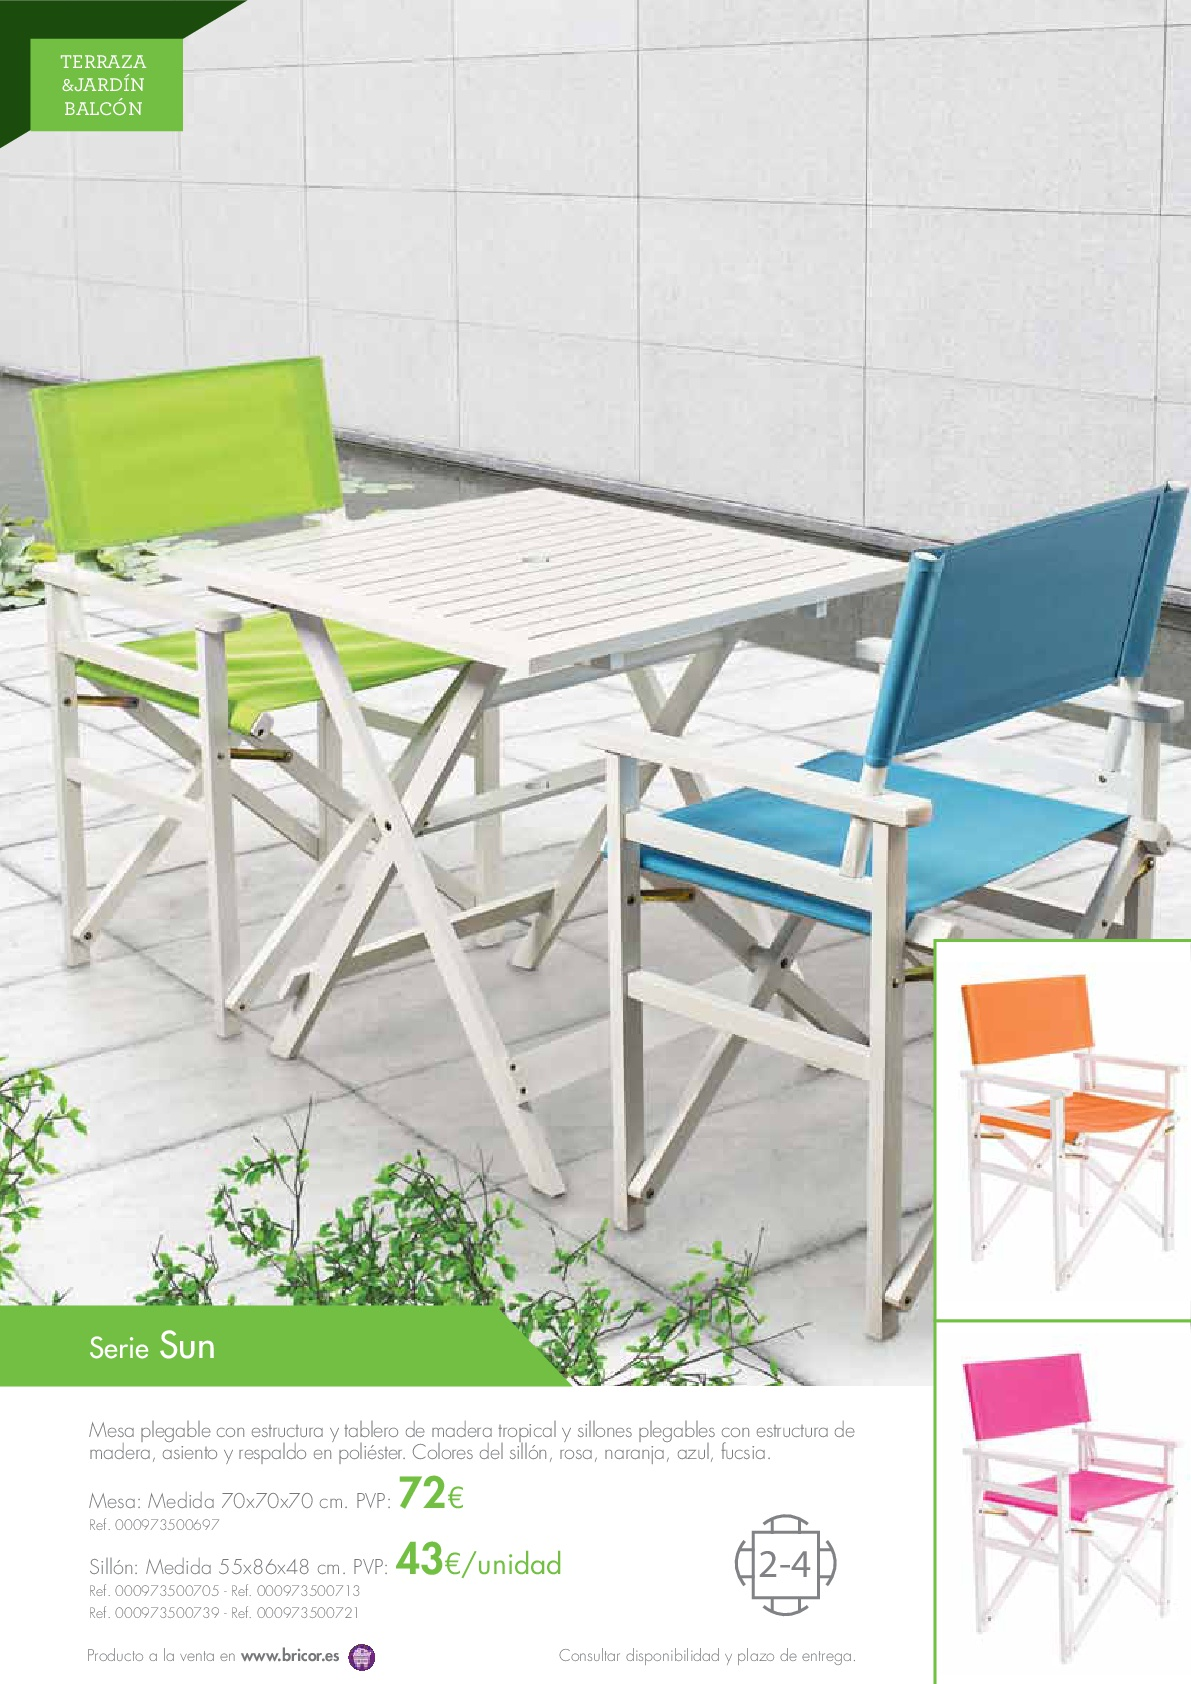 Bricor muebles jardin 201616 revista muebles for Revista jardin 2016